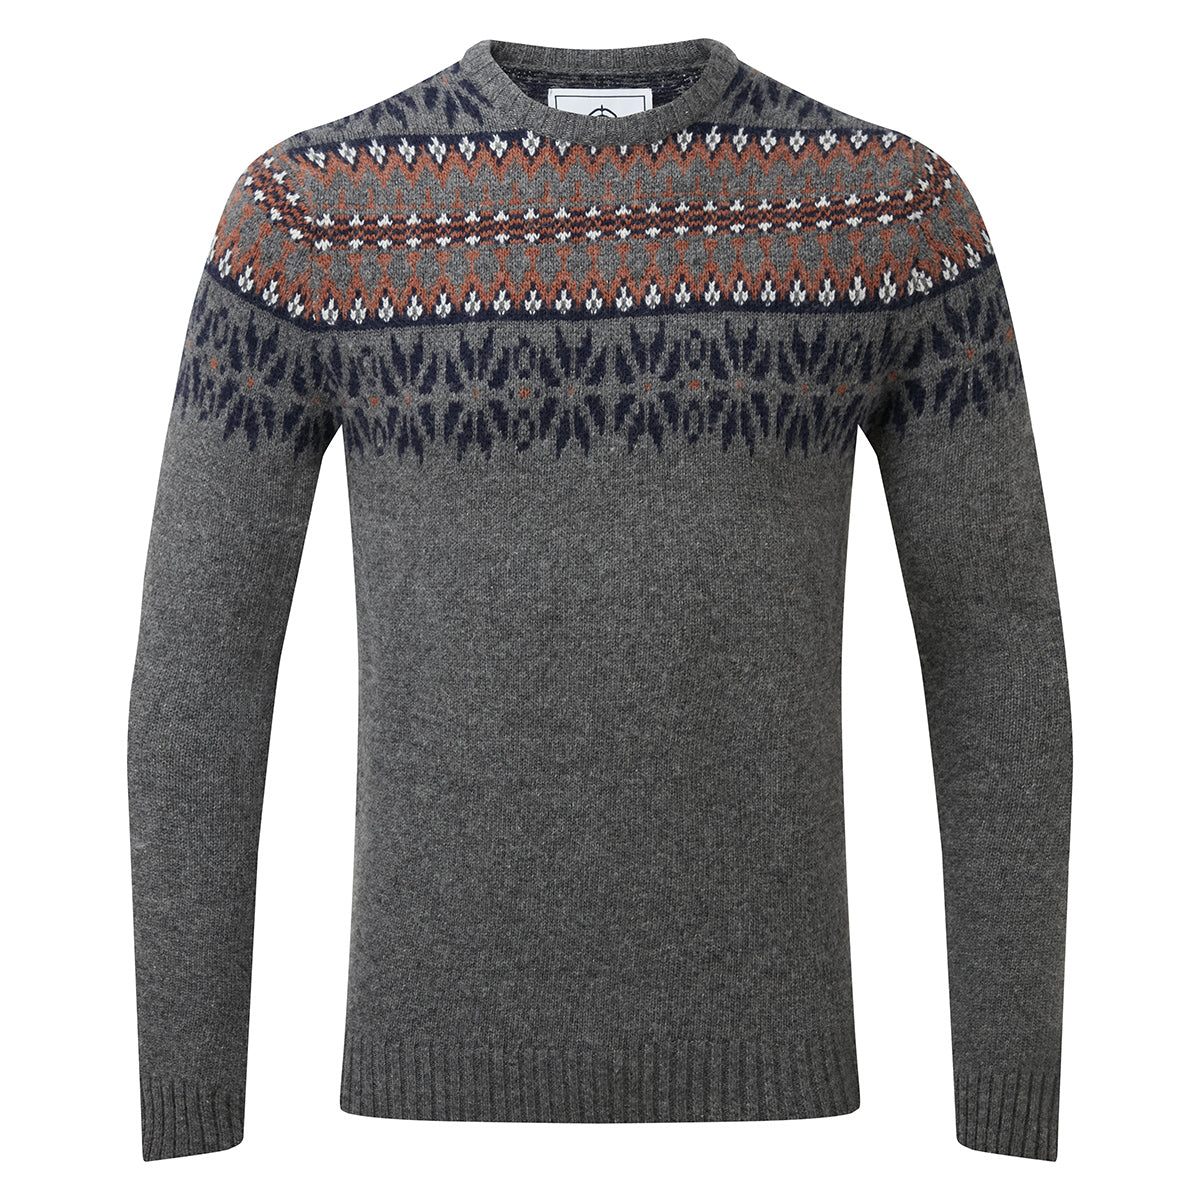 Melvin Mens Fairisle/Pattern Jumper - Light Grey Marl/Amber image 4